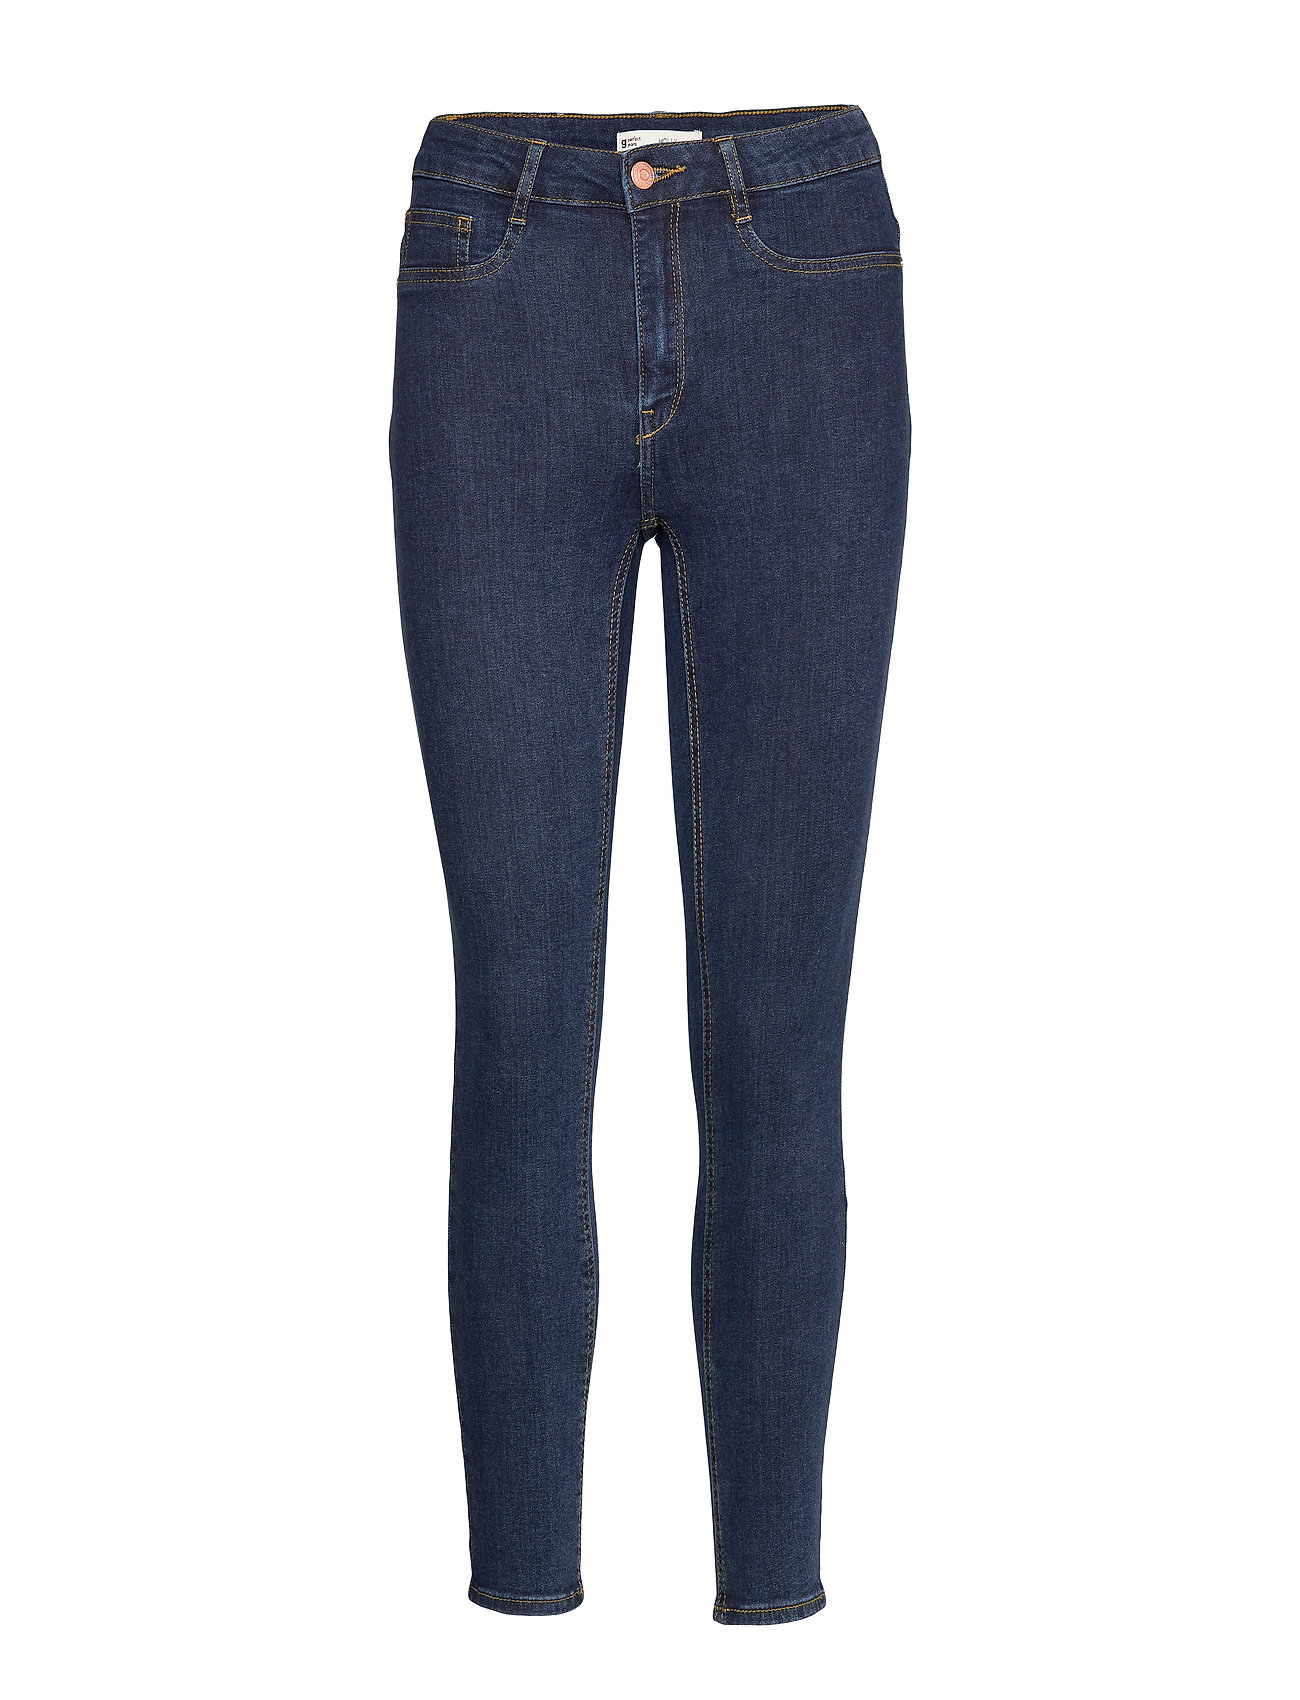 Gina Tricot Molly highwaist jeans - RINSE G